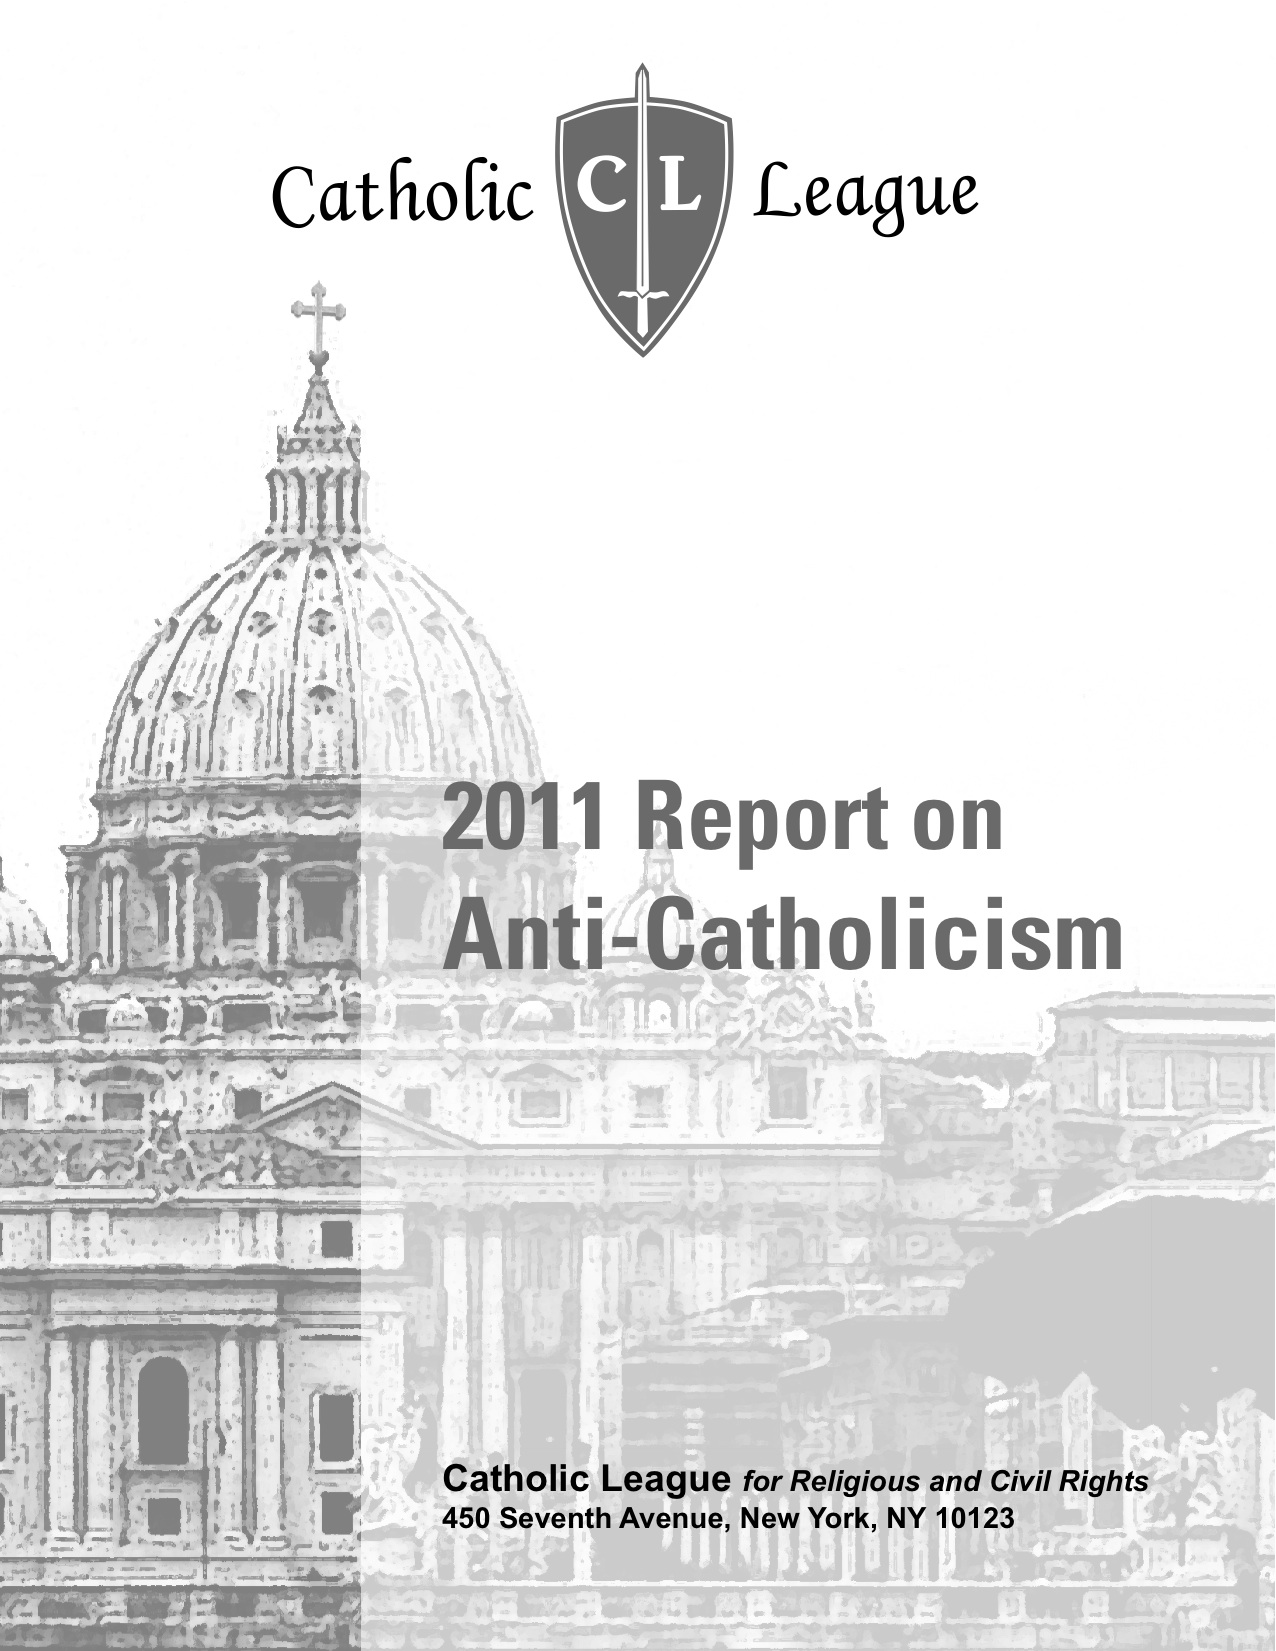 Catholic League's 2011 Report on Anti-Catholicism